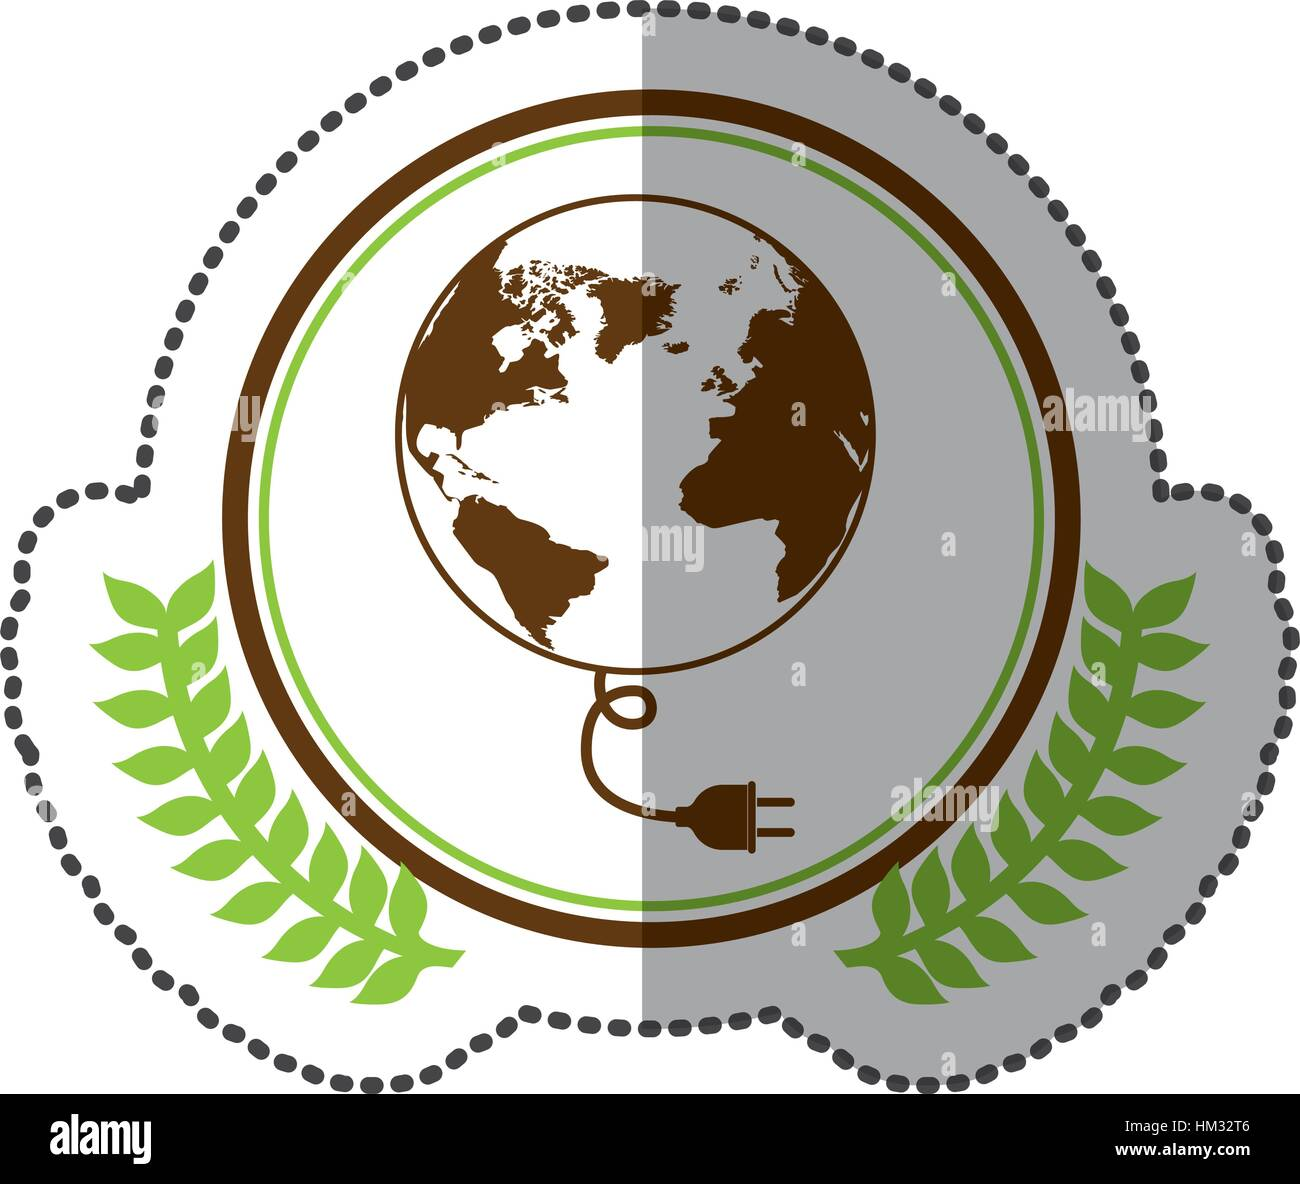 Middle shadow sticker colorful with olive crown with world map and middle shadow sticker colorful with olive crown with world map and connector in circle vector illustration gumiabroncs Images